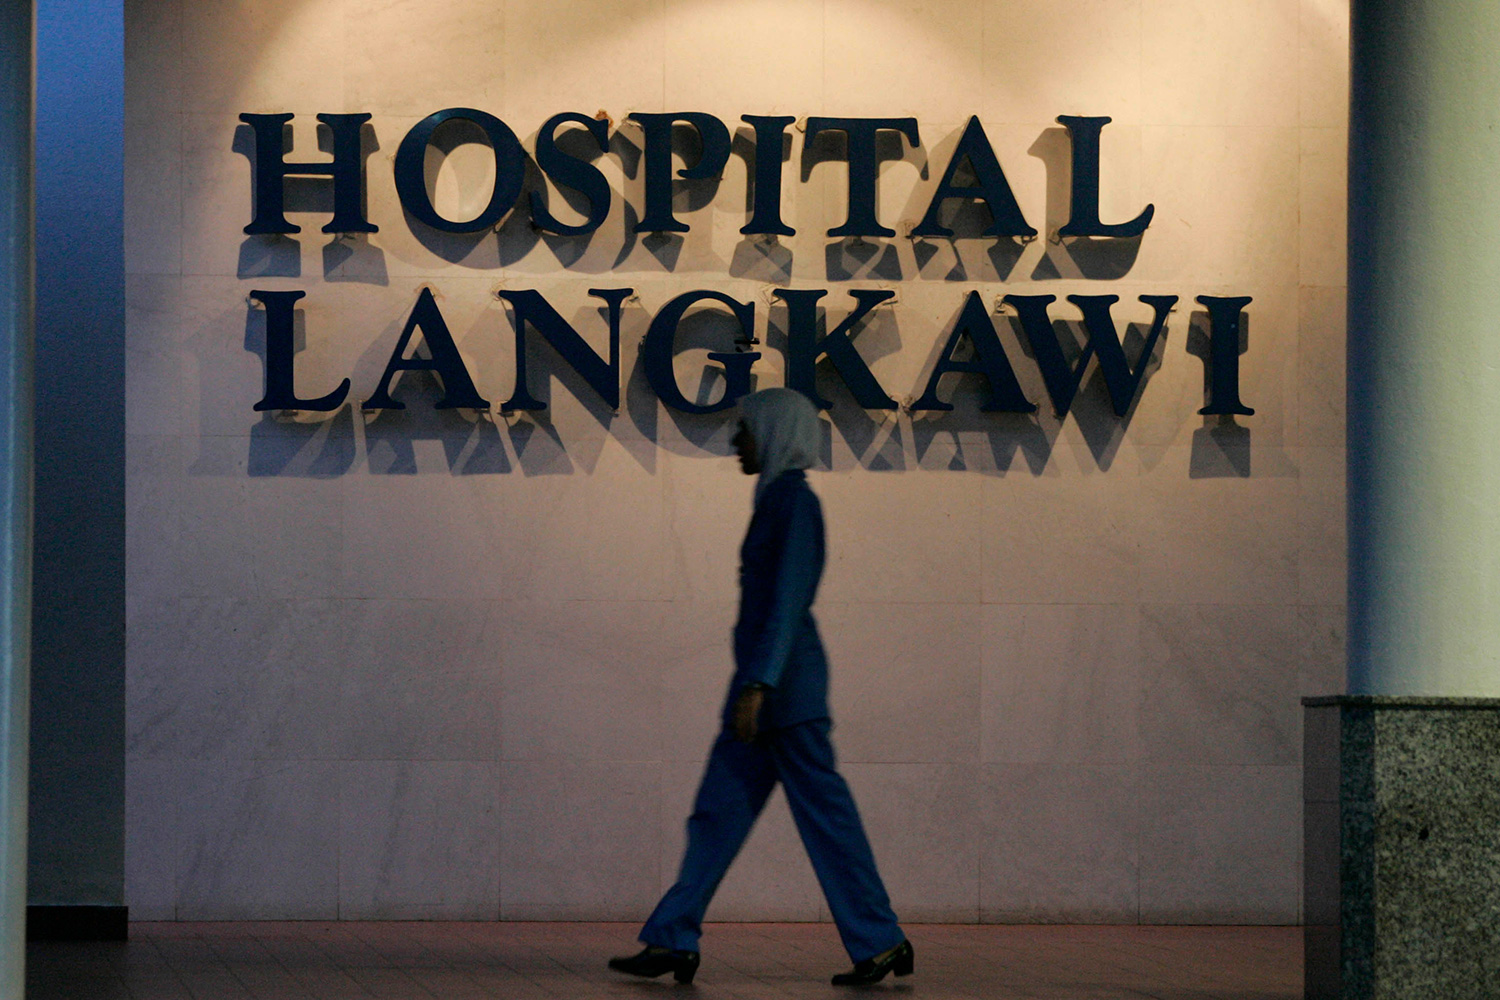 Photo shows a large hospital sign with a tall nurse walking by in front of it.